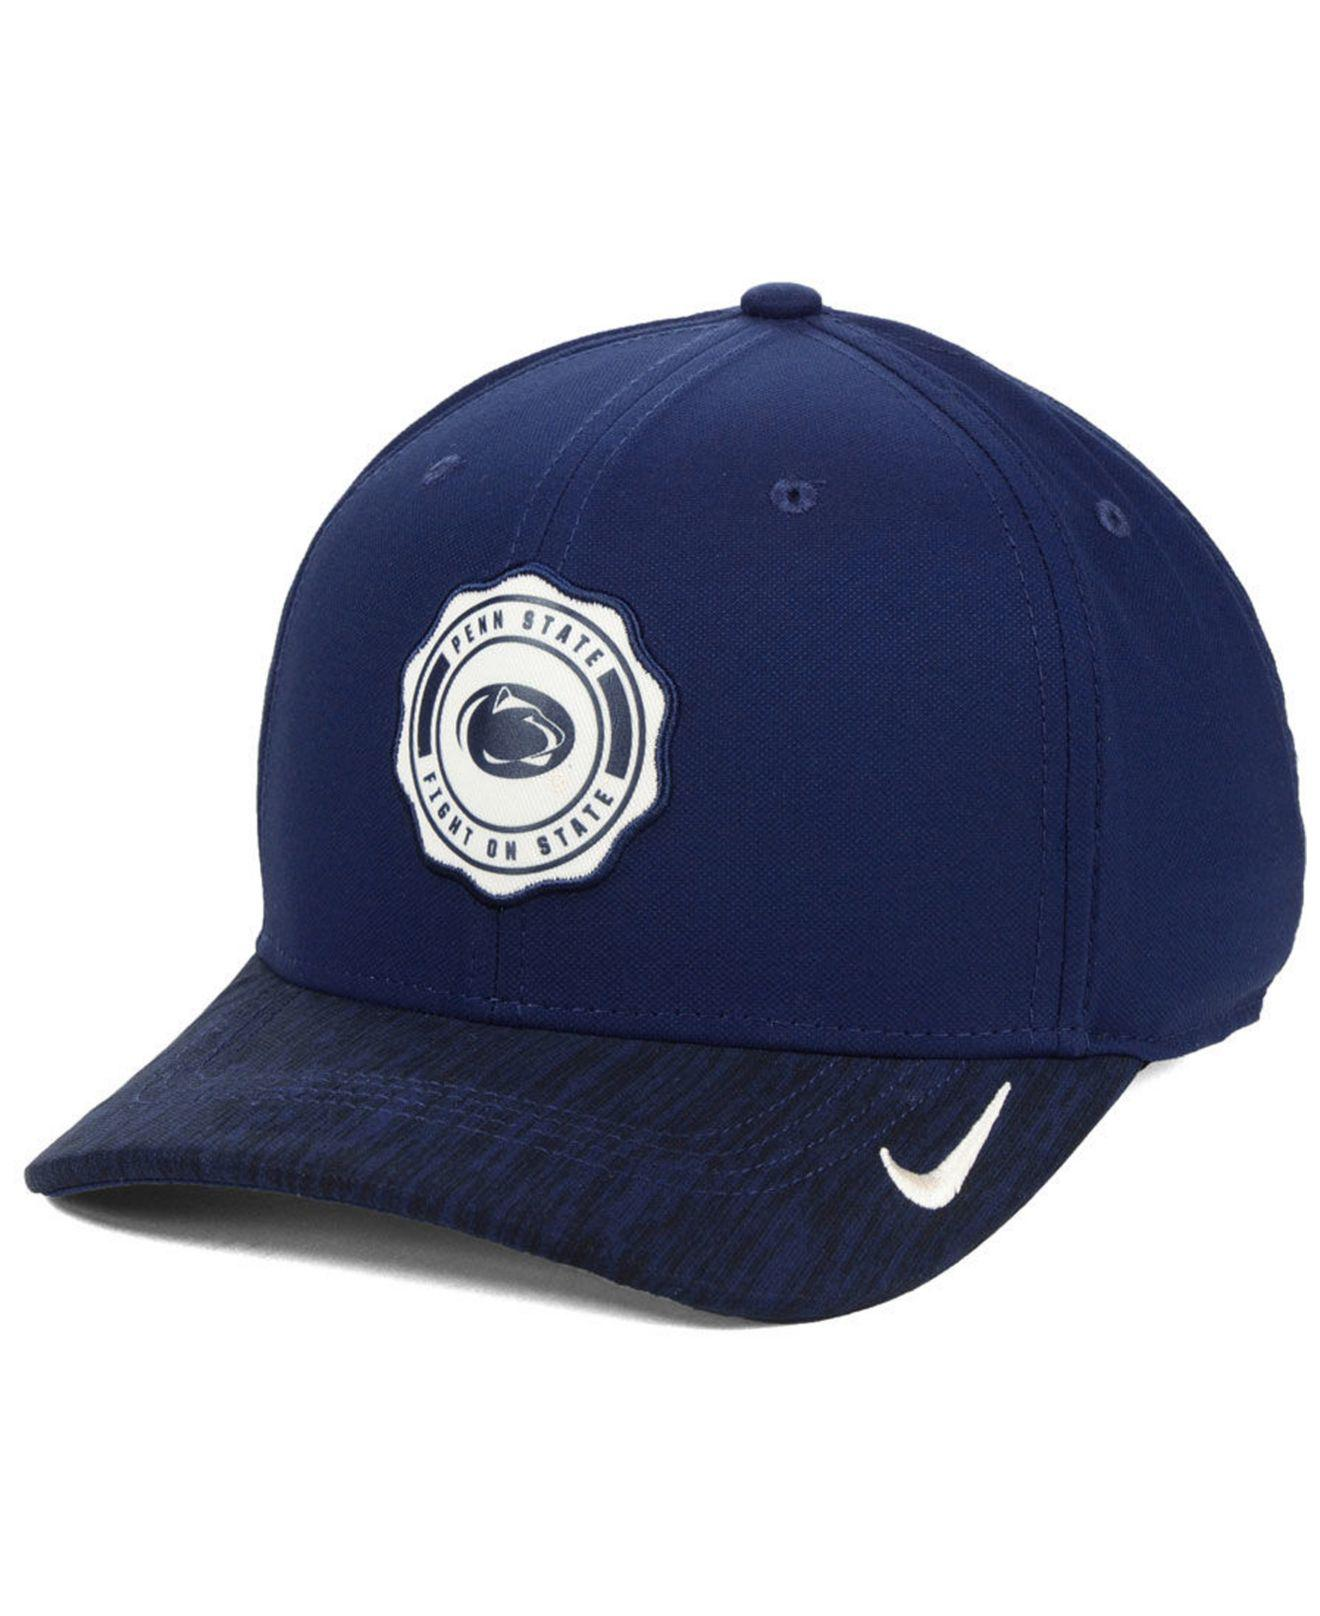 Lyst - Nike Penn State Nittany Lions Rivalry Cap in Blue for Men 943df1606